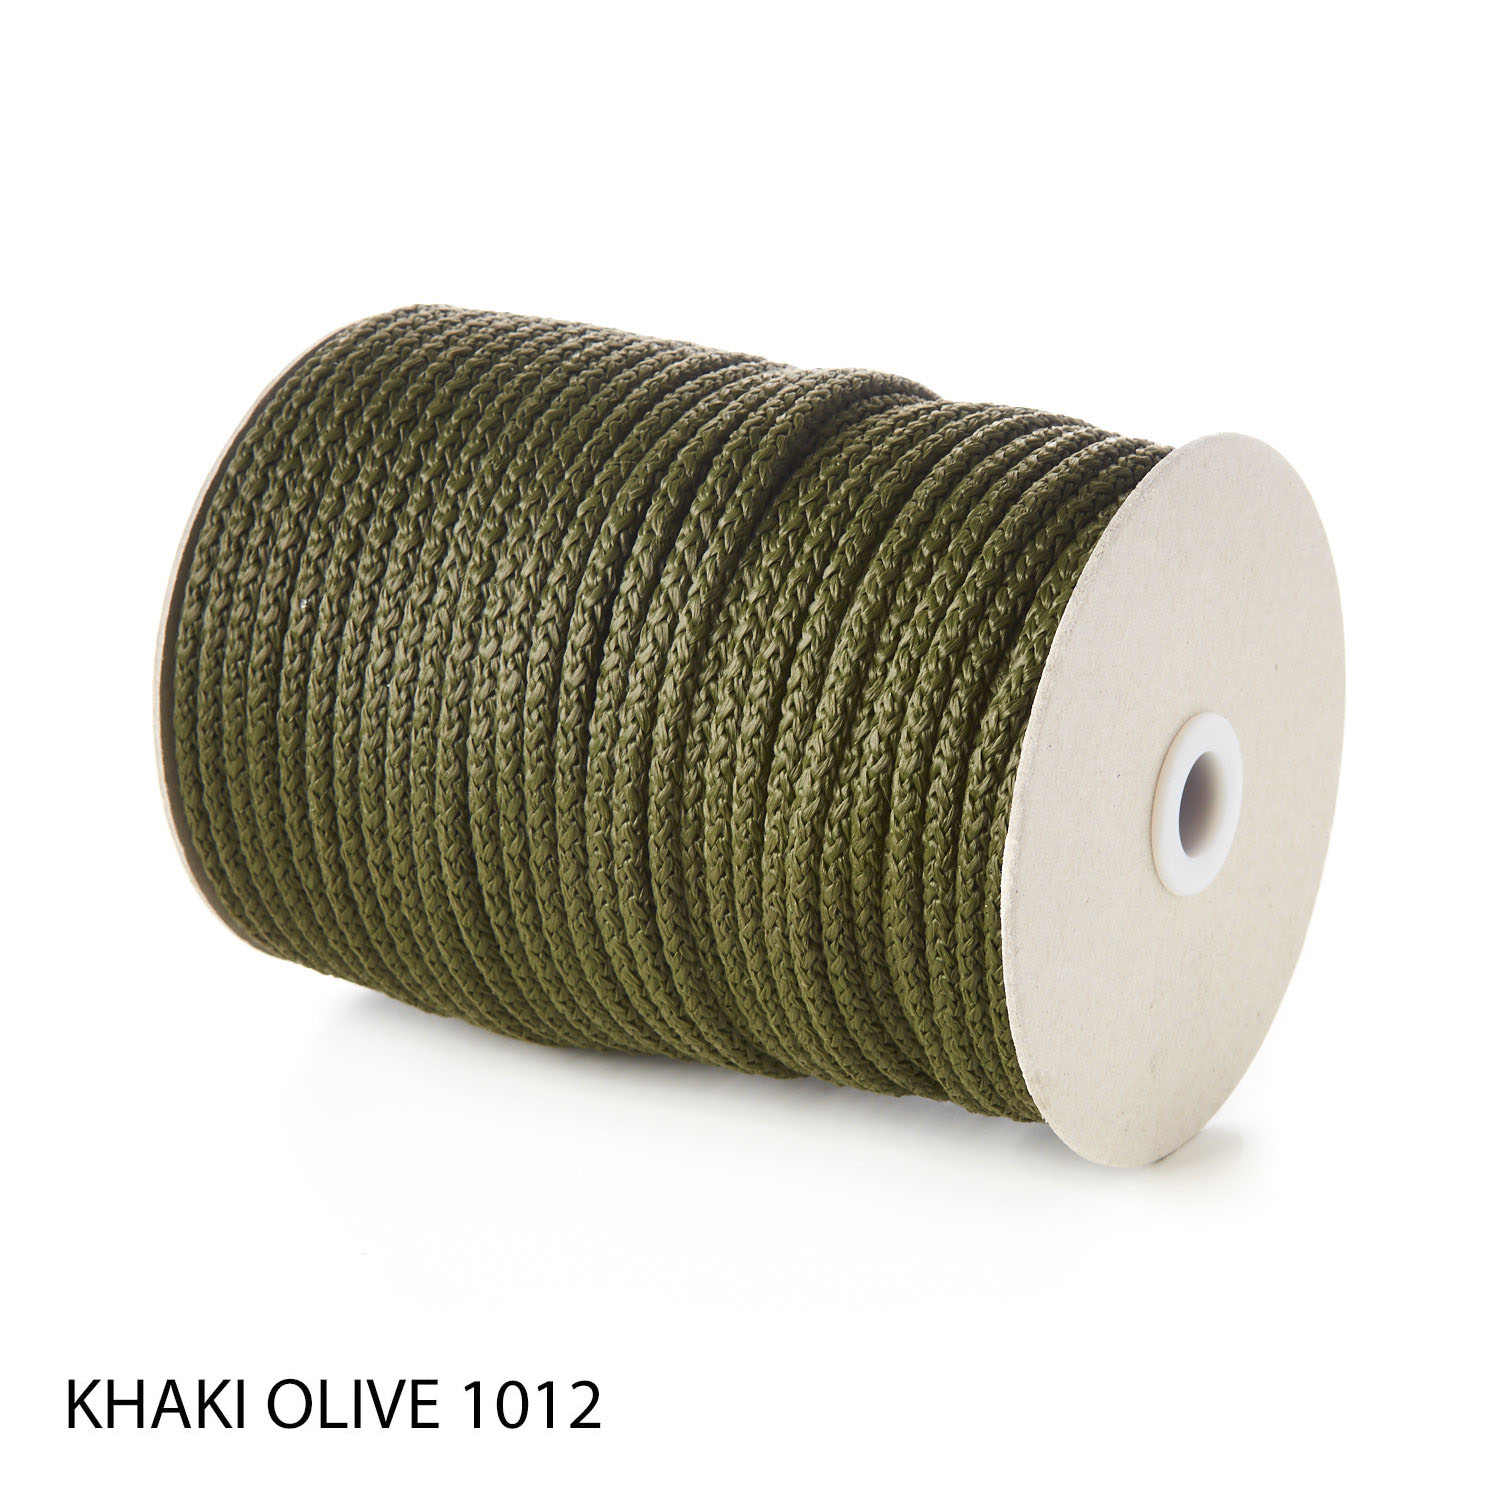 Khaki Polypropylene Knitted Cords Round String Rope Strong